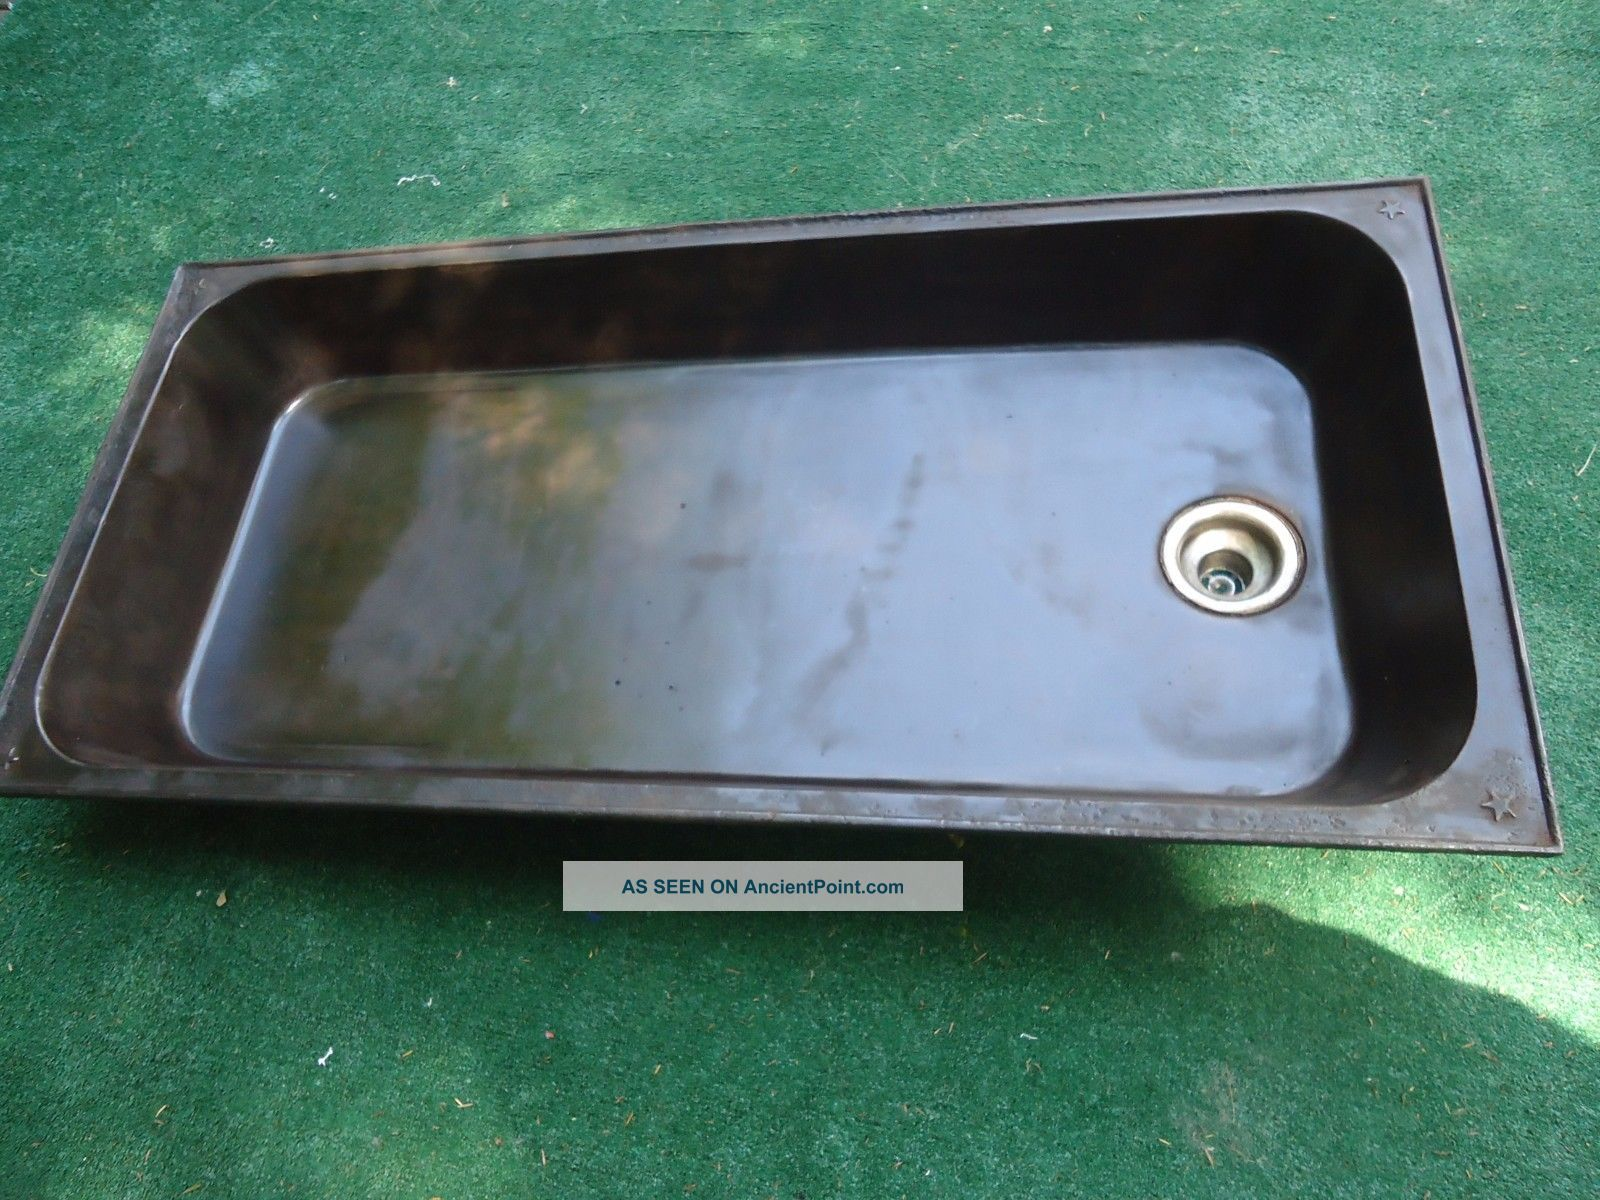 Antique Laundry Sink N & N Mfg.  Co Bangor,  Me.  Laundry Sink,  Embossed,  Forge,  Terarium Sinks photo